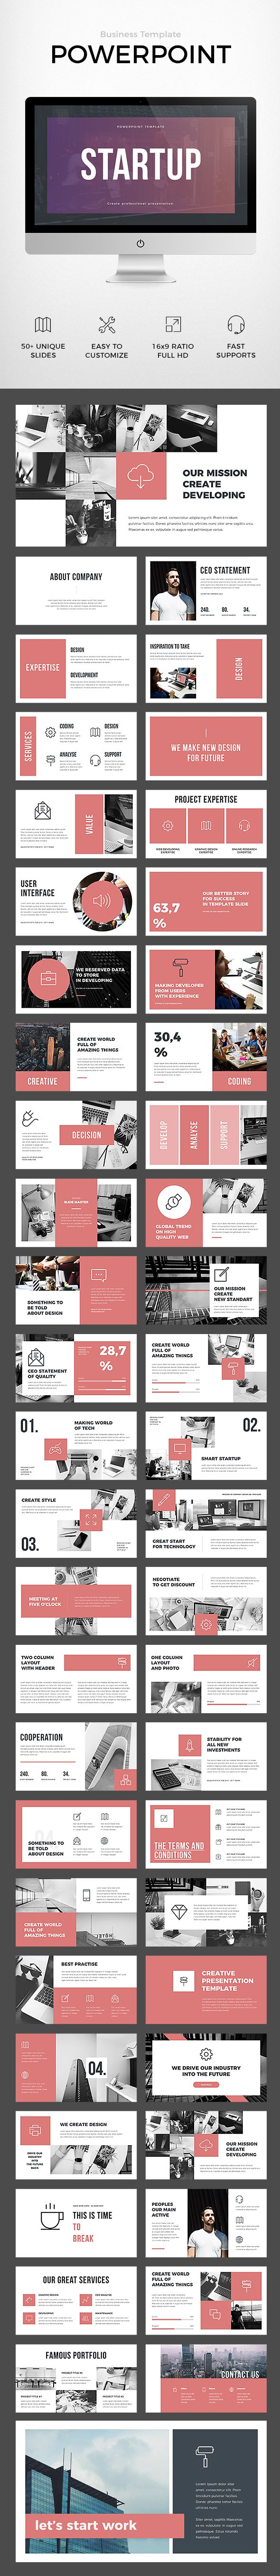 Business Powerpoint Template Business Powerpoint Templates Buy